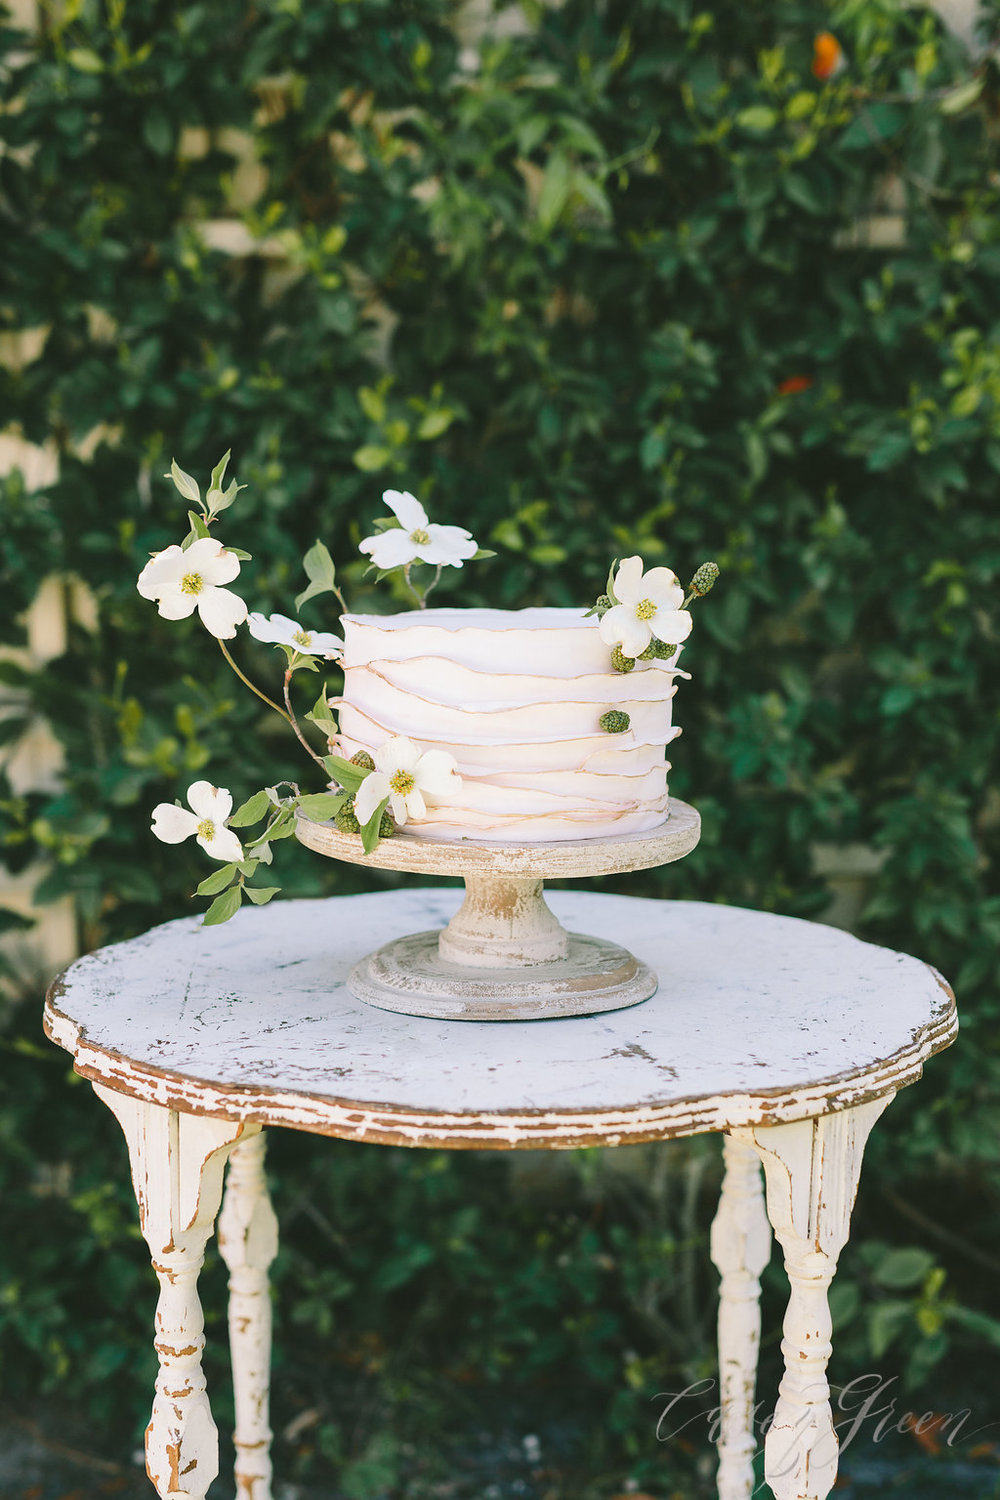 savannah-bridal-shop-ivory-and-beau-bridal-boutique-casey-green-photography-tybee-island-chapel-wedding-planning-mistakes-8.jpg